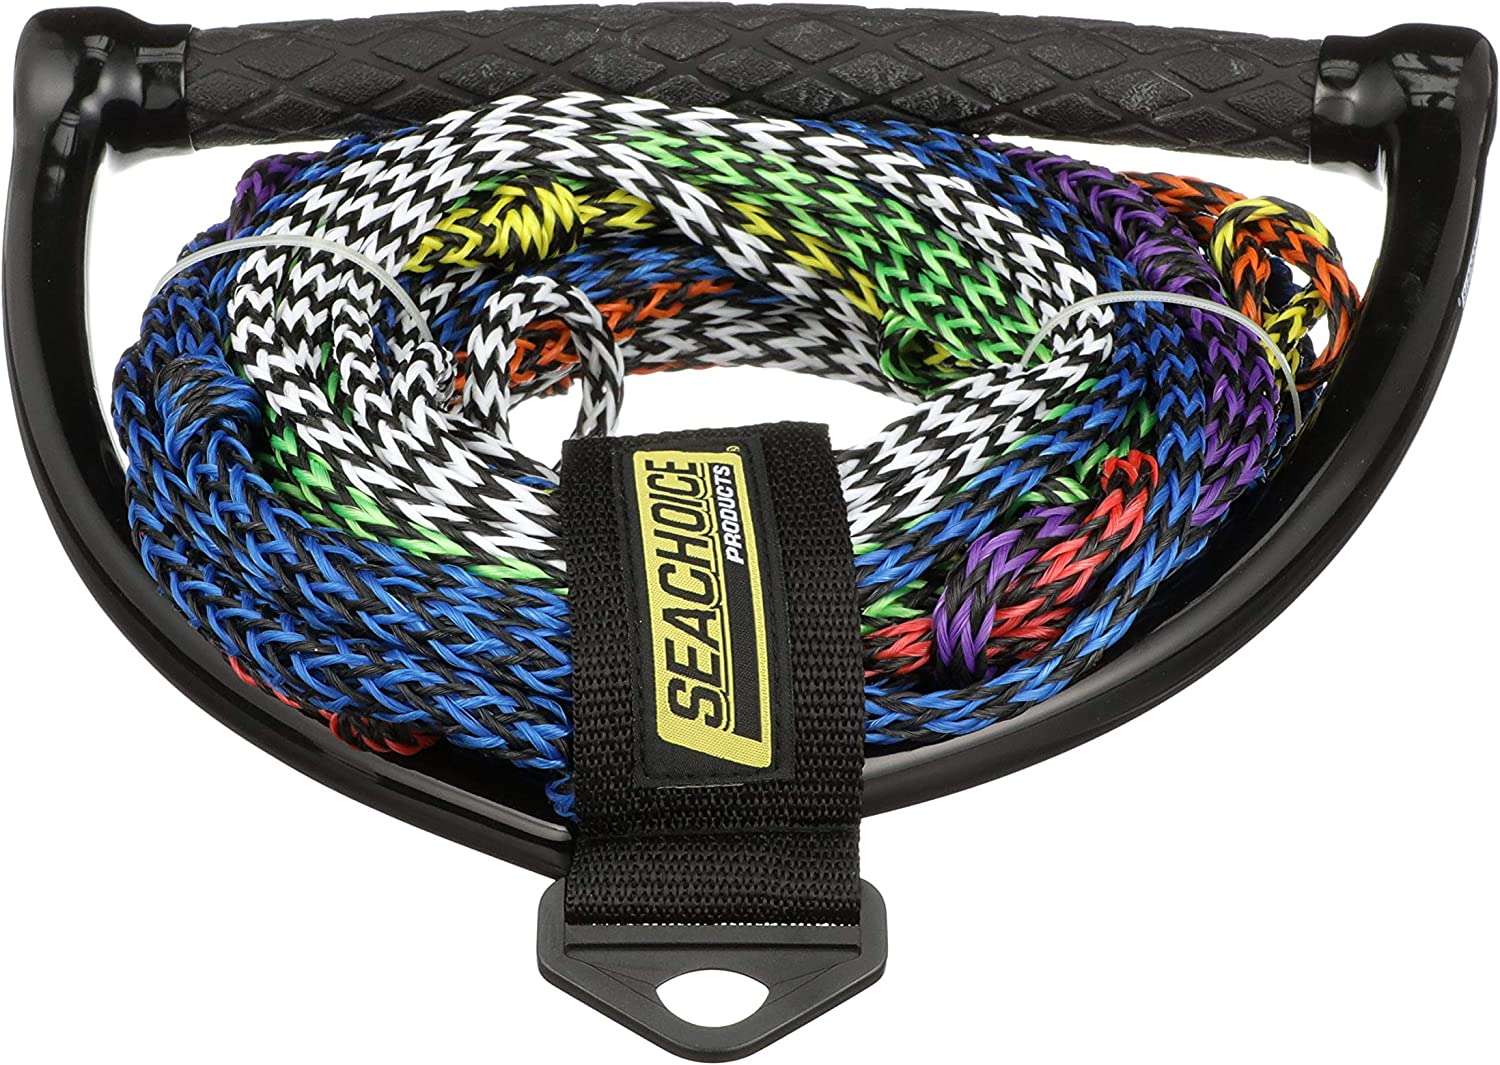 Seachoice Seachoice 86763 8-Section Water Ski or Wakeboard Rope, 75 Feet Long, 13 Inch Handle with Textured Rubber Grip